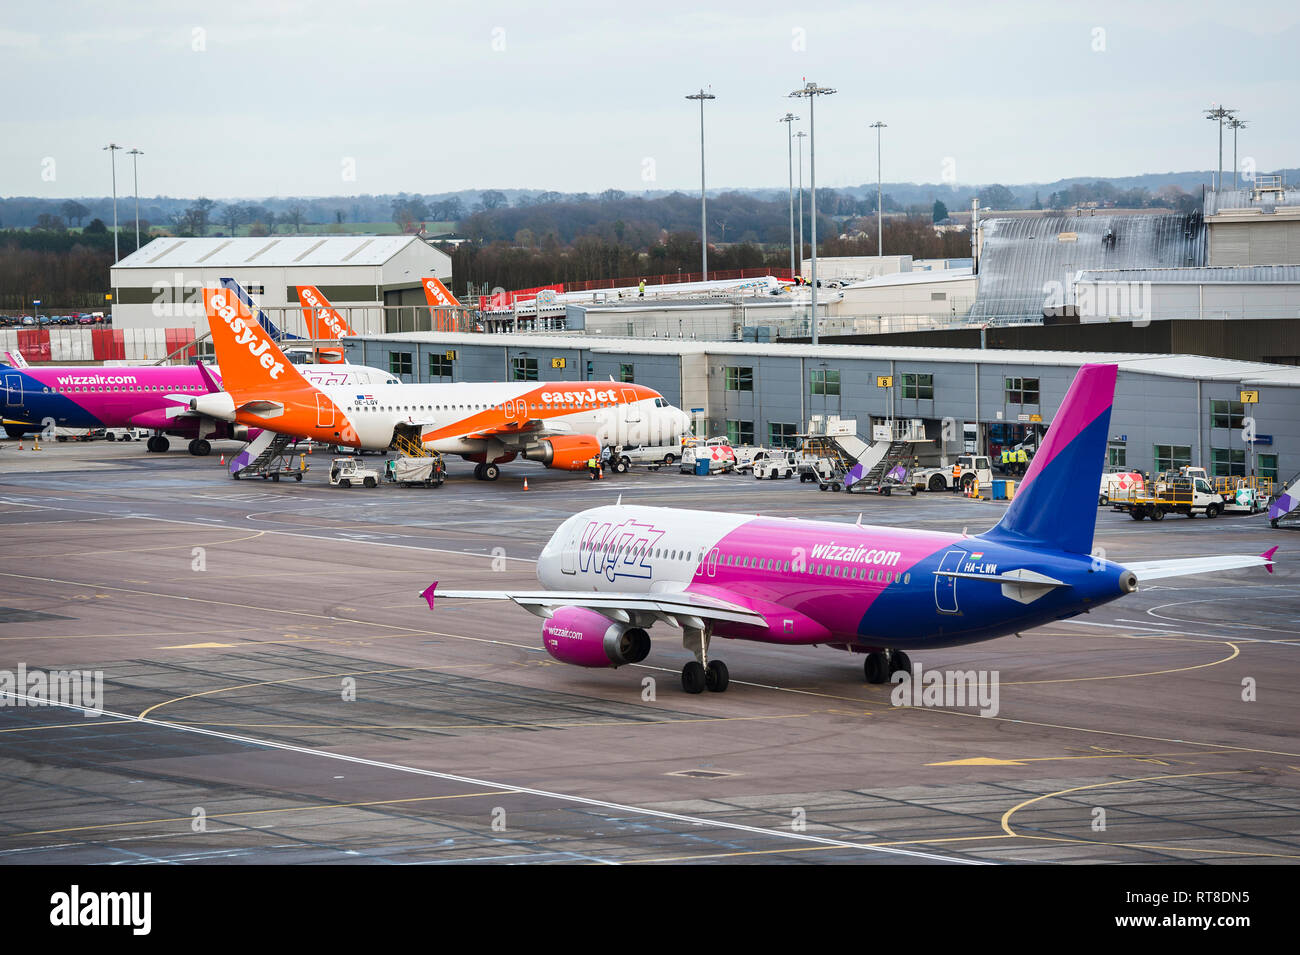 Wizz Air aeroplane preparing to taxi at Luton airport, England. - Stock Image